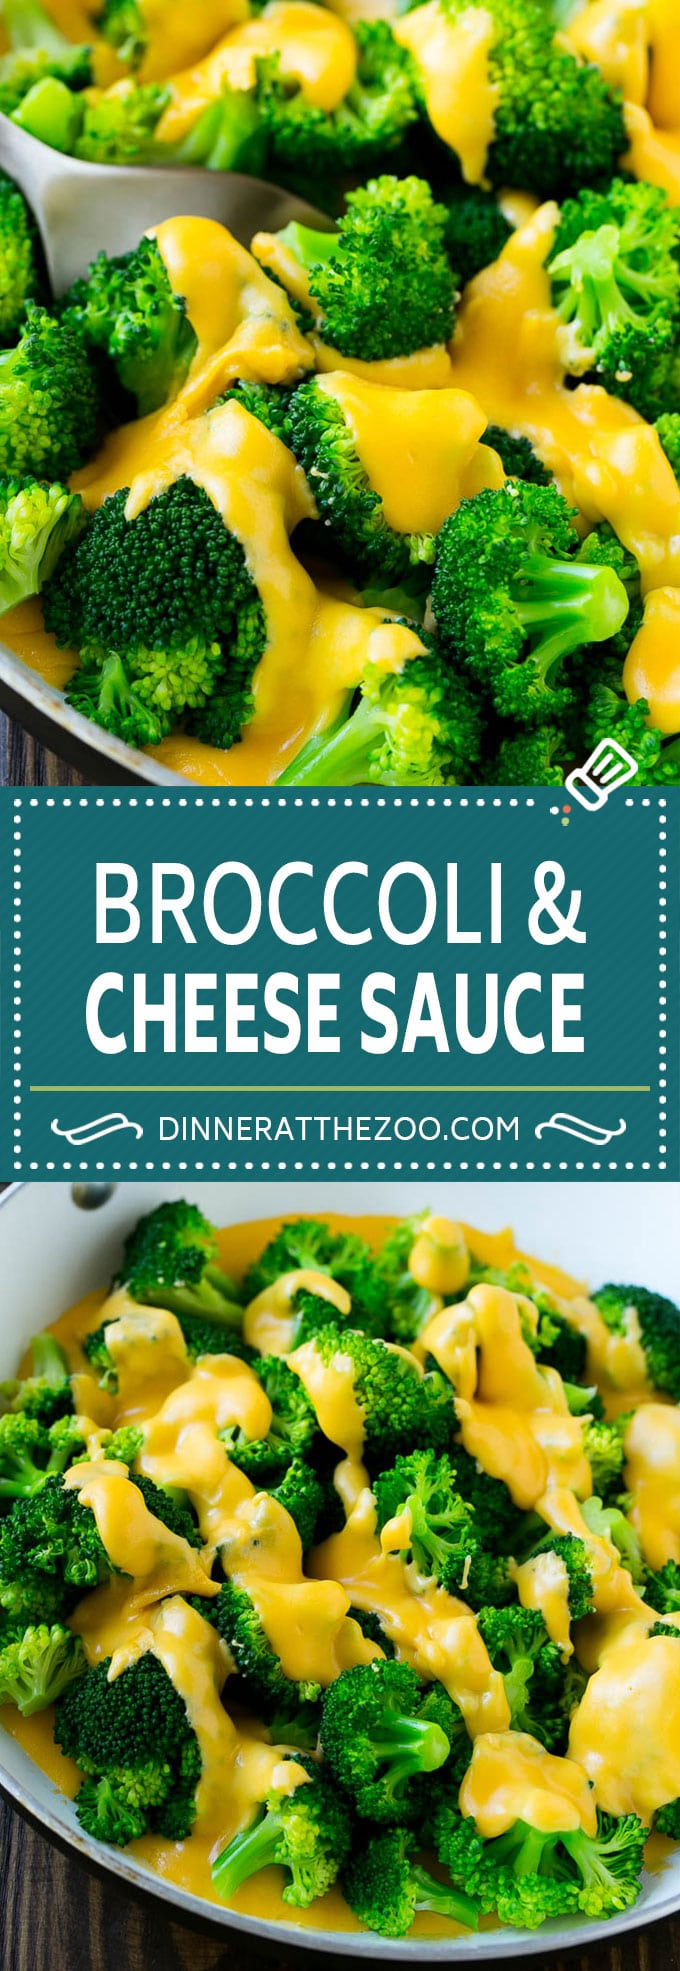 Broccoli with Cheese Sauce Recipe | Homemade Cheese Sauce | Broccoli Side Dish #broccoli #cheese #lowcarb #sidedish #dinneratthezoo